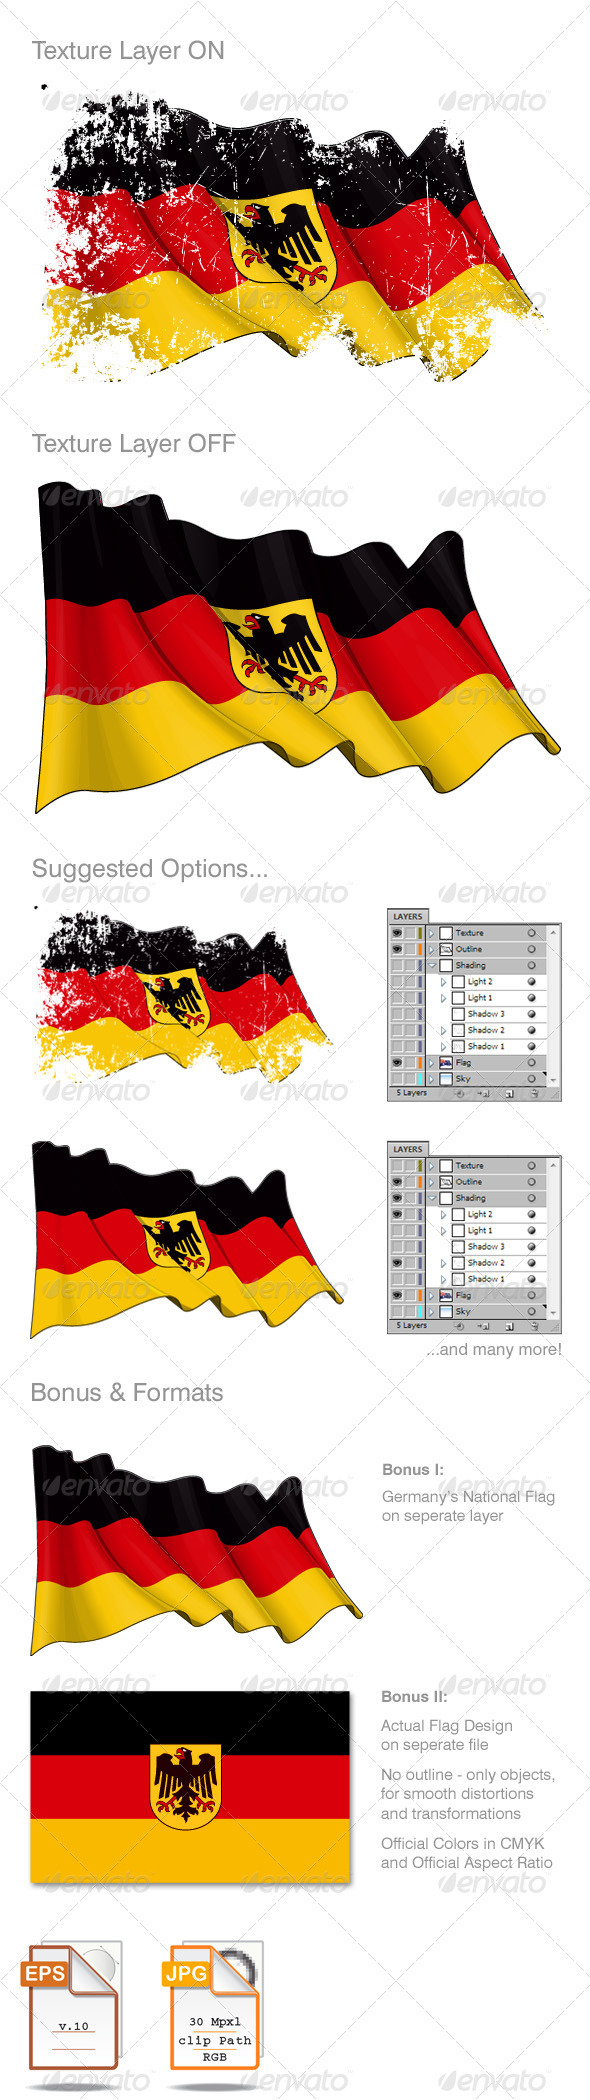 Germany's State & National Flags Grunge